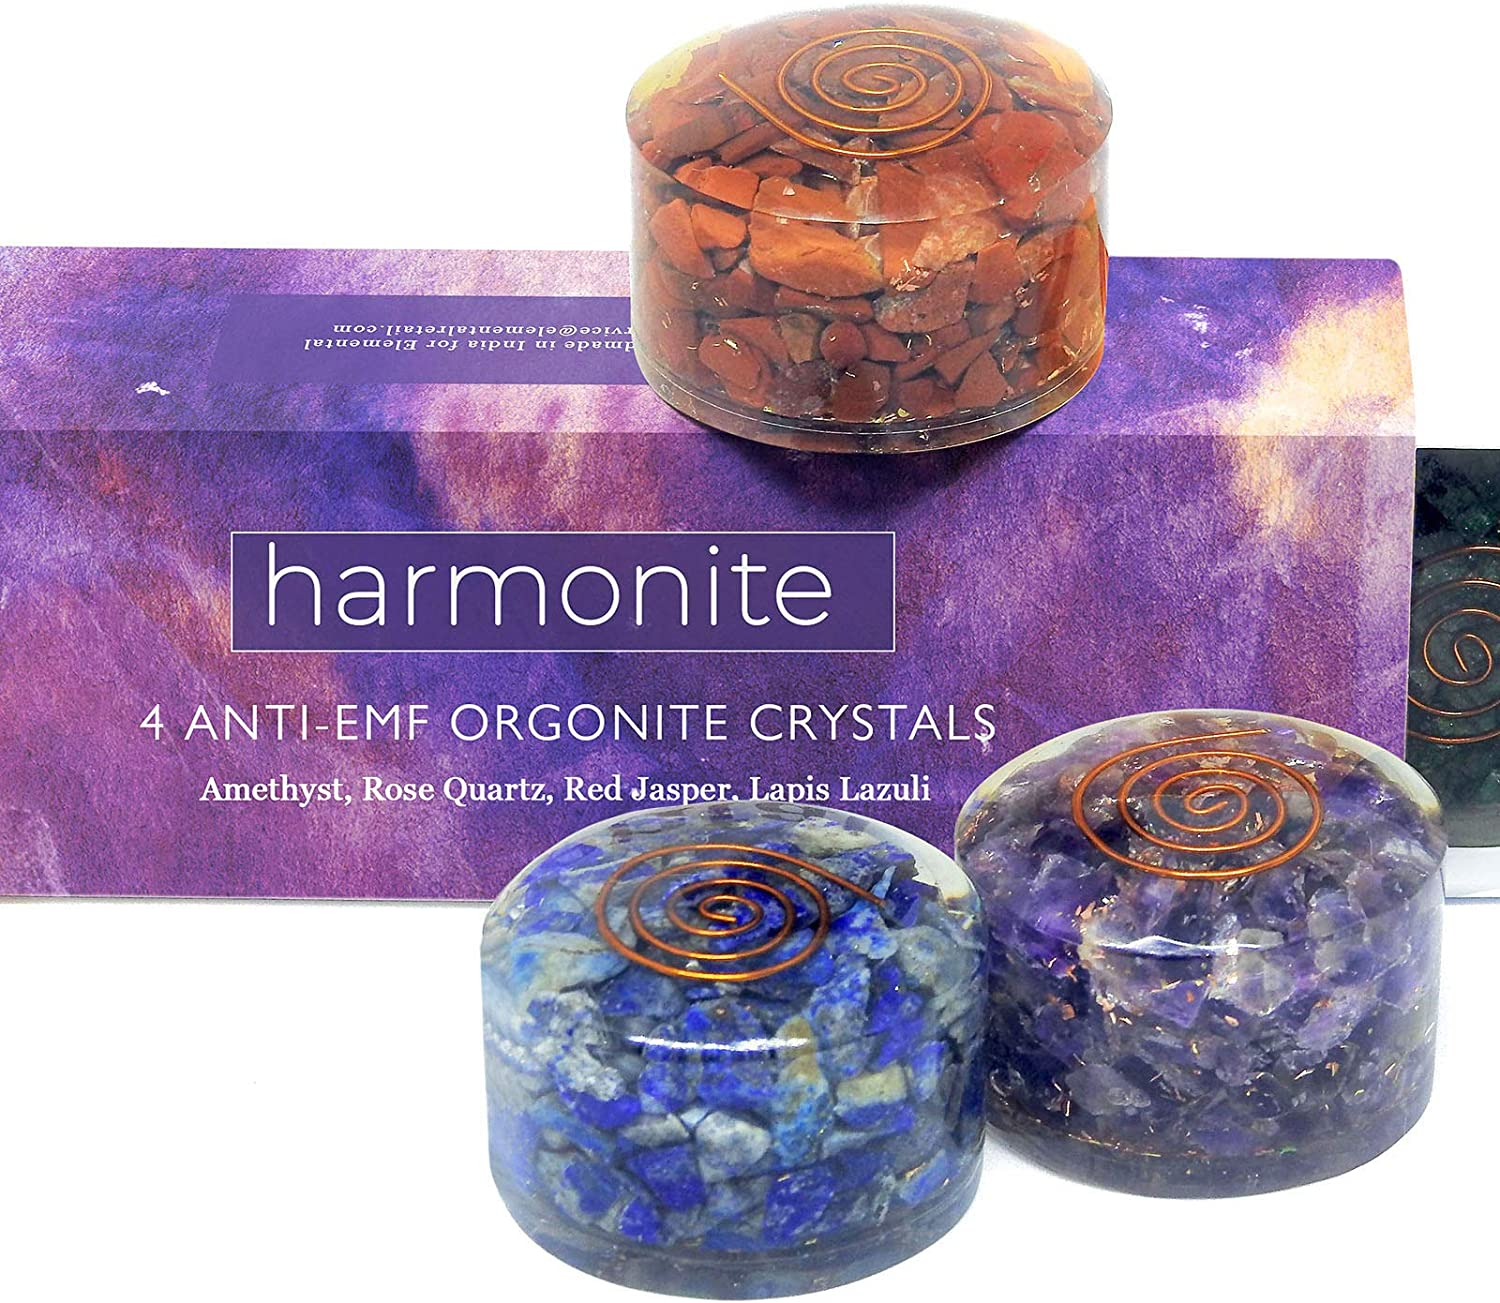 4 Handmade Crystals and Healing Stones, 5G emf Protection and Stress Relief Gift Set. Orgonite Amethyst, Red Jasper, Rose Quartz, Lapis Lazuli Meditation, Relaxation and Restful Sleep Healing Crystals